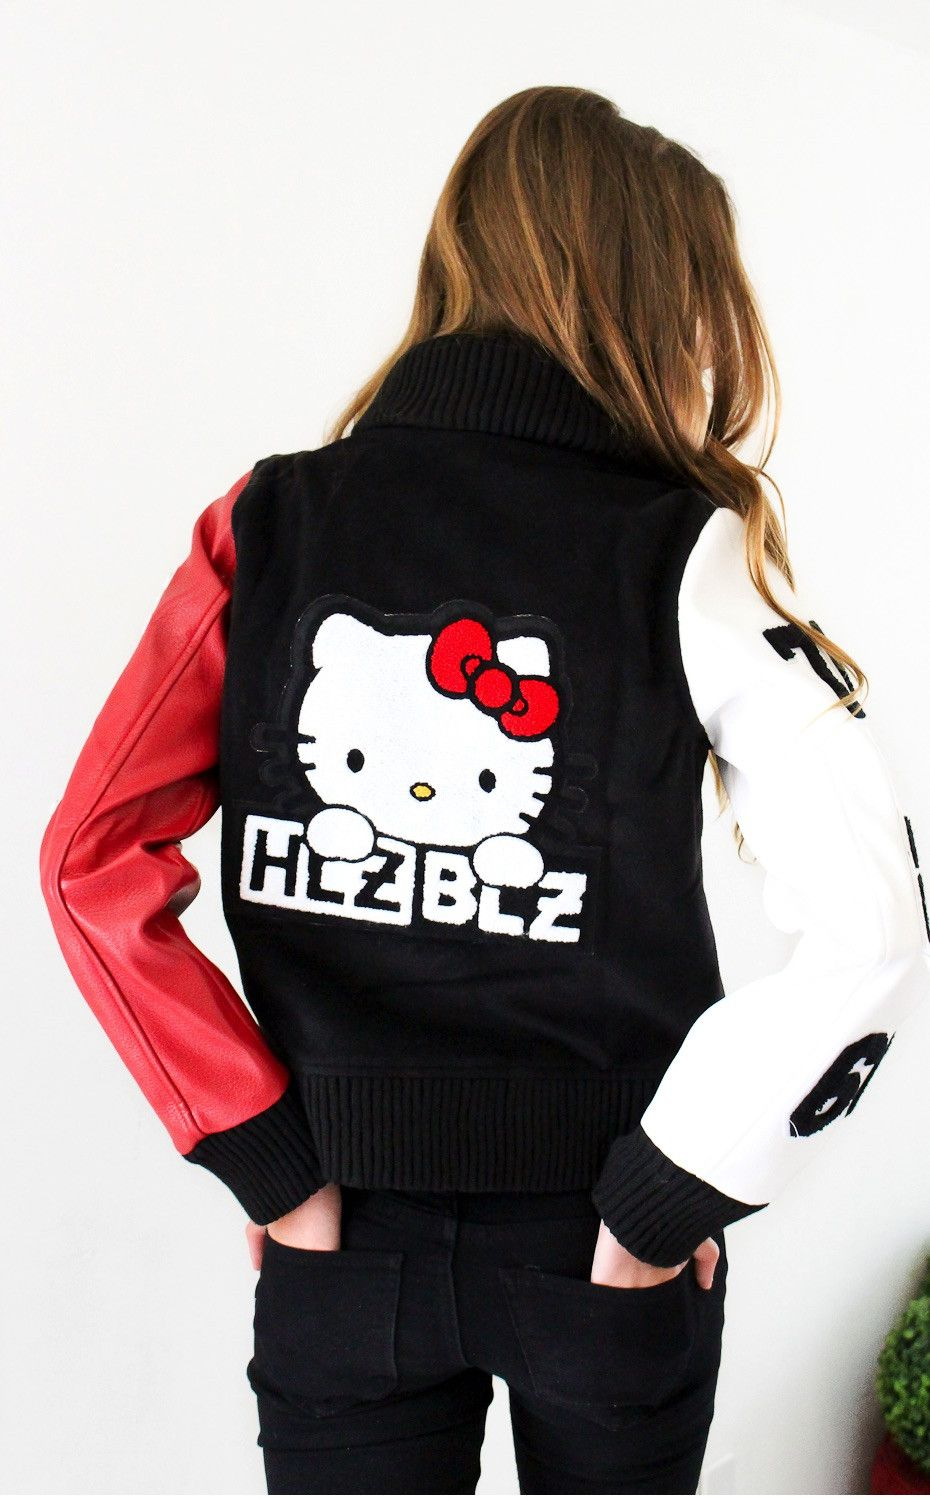 24594a9a0 Hellz Bellz x Hello Kitty Rad Girls Club Jacket from NYCT | Sanrio ...